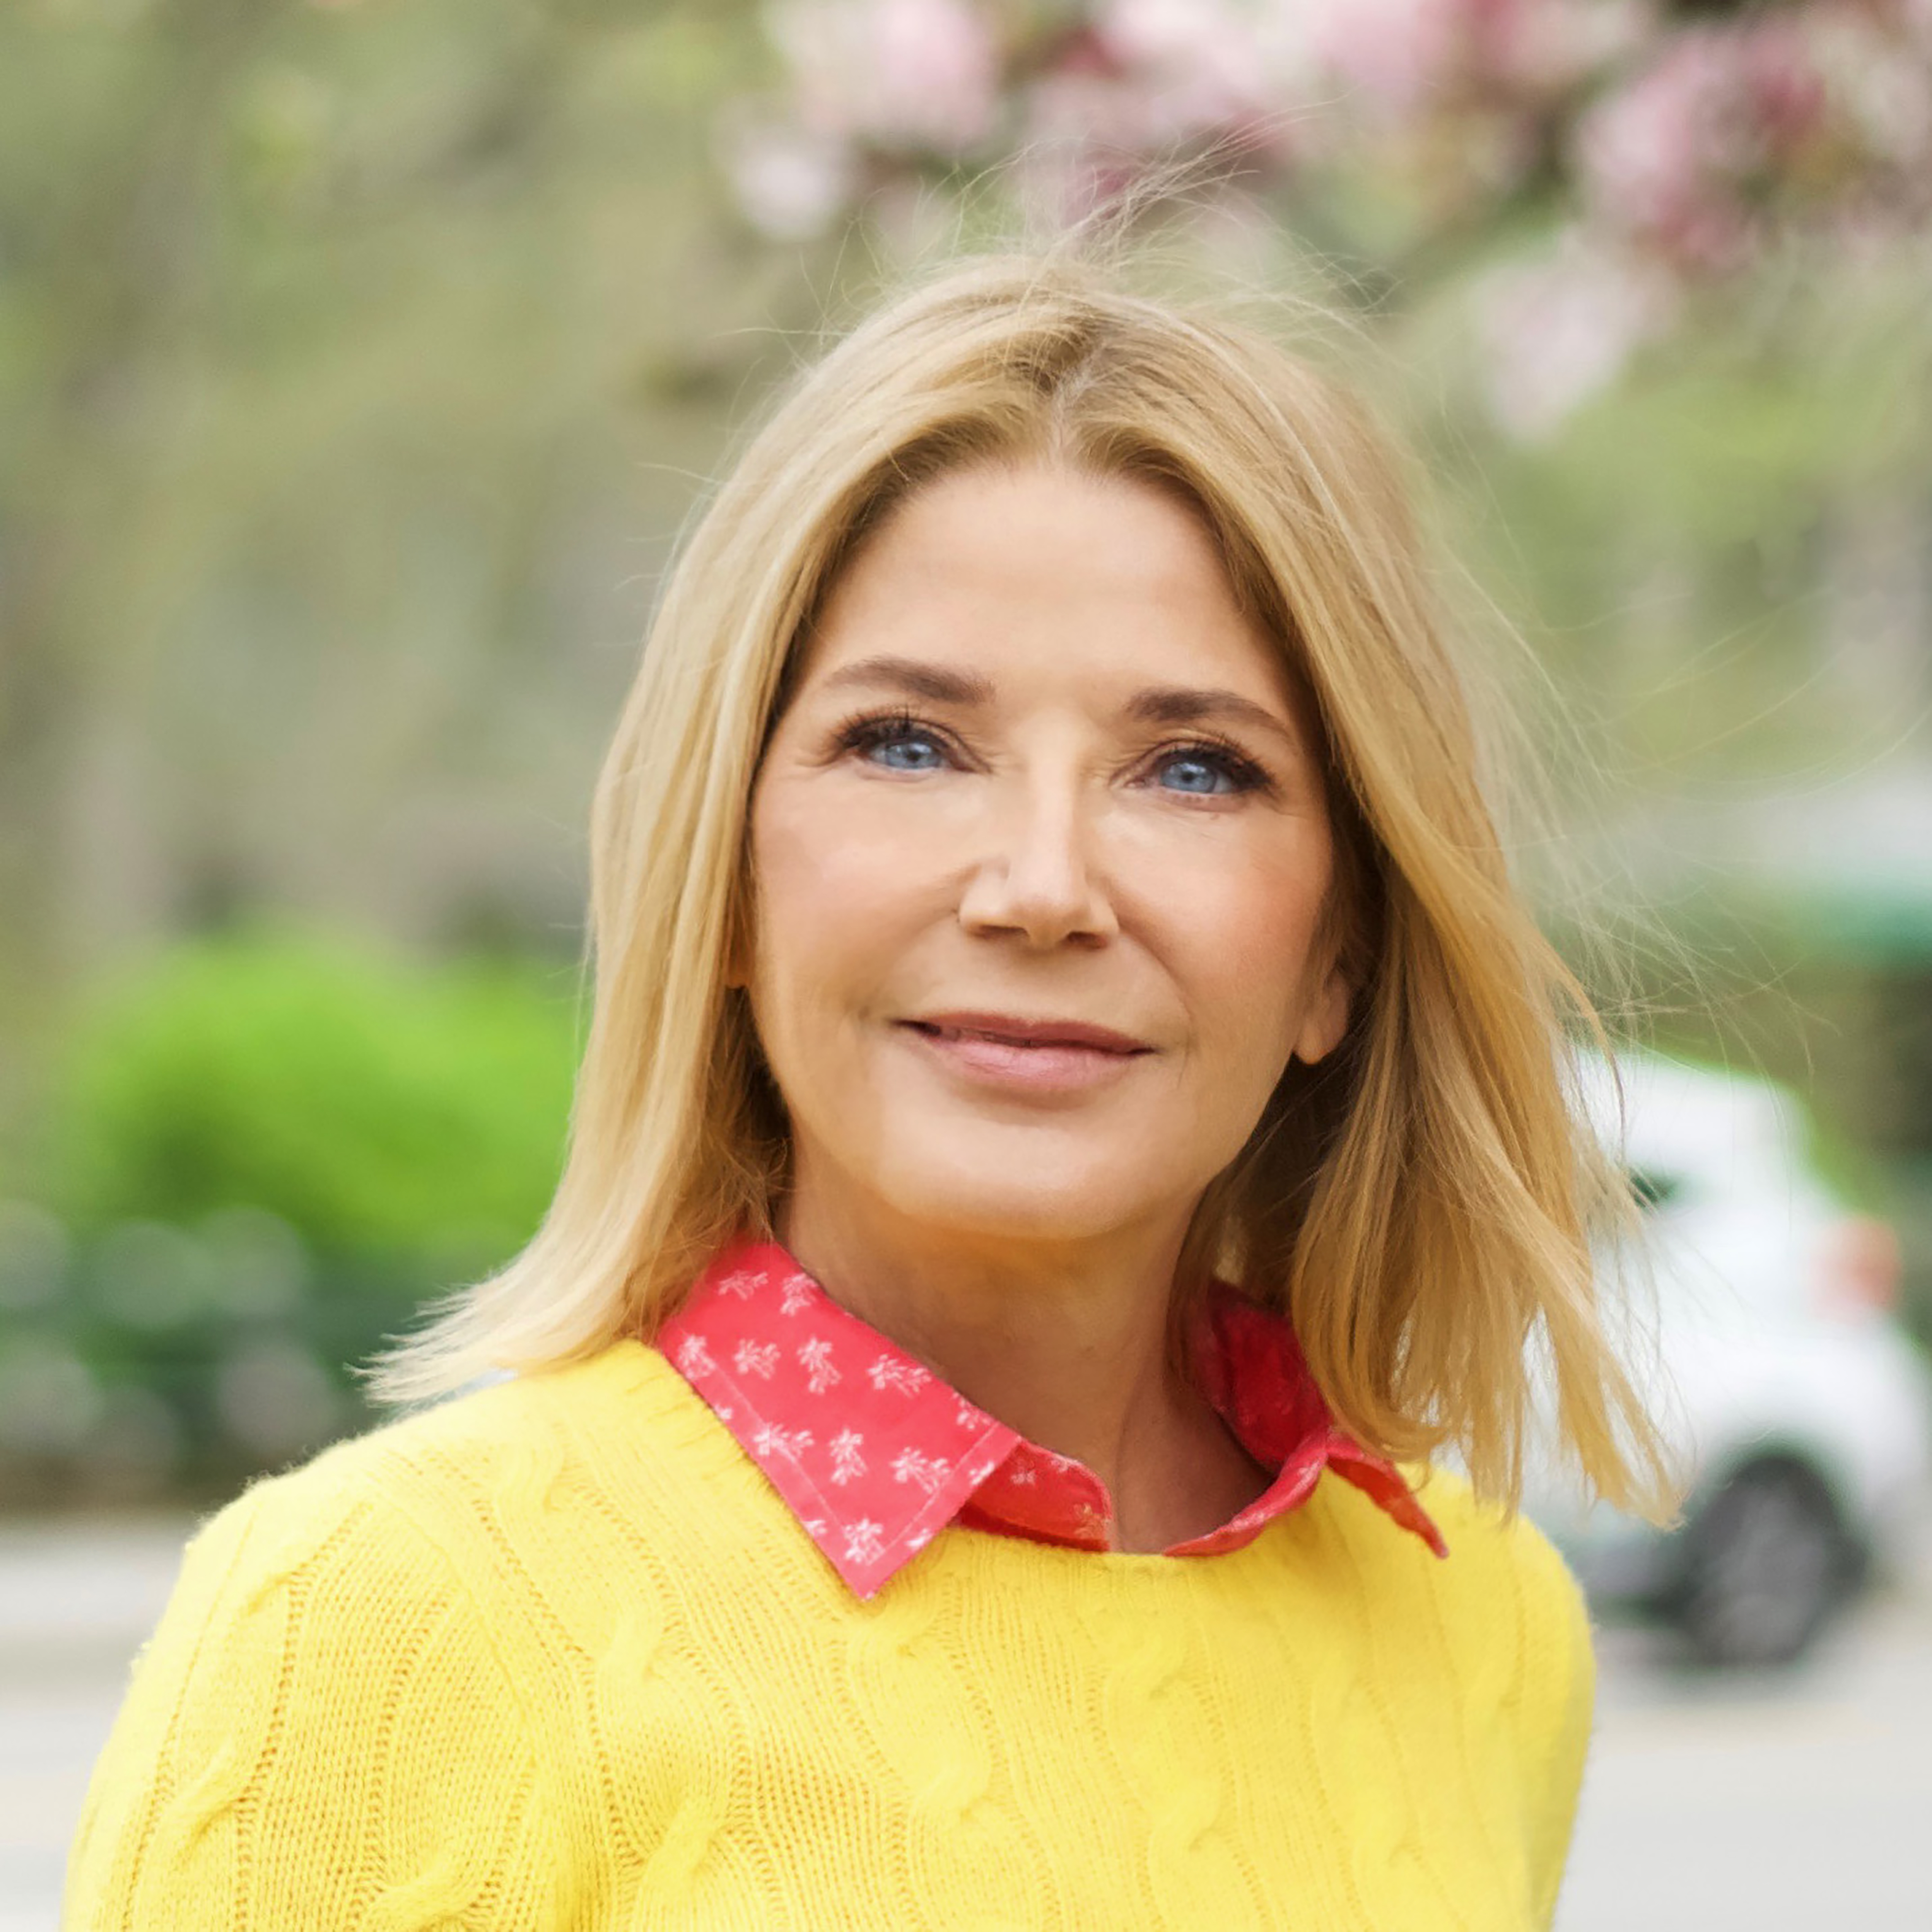 Candace Bushnell (Anna Maguire/PA)